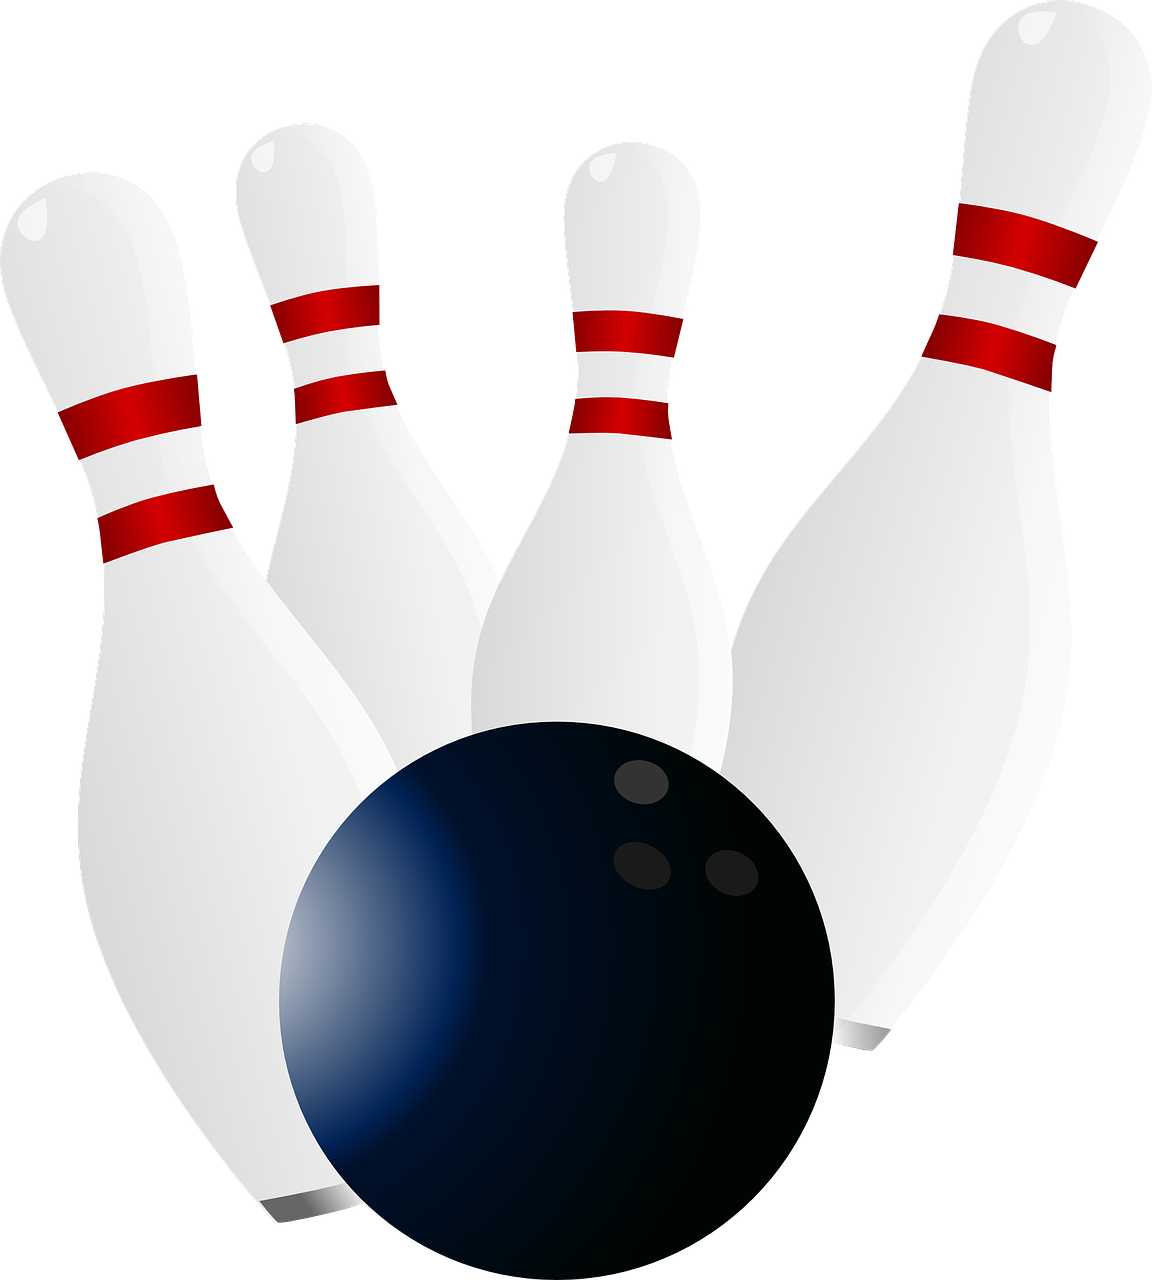 Asl club deaf studies. Bowling clipart bowling night